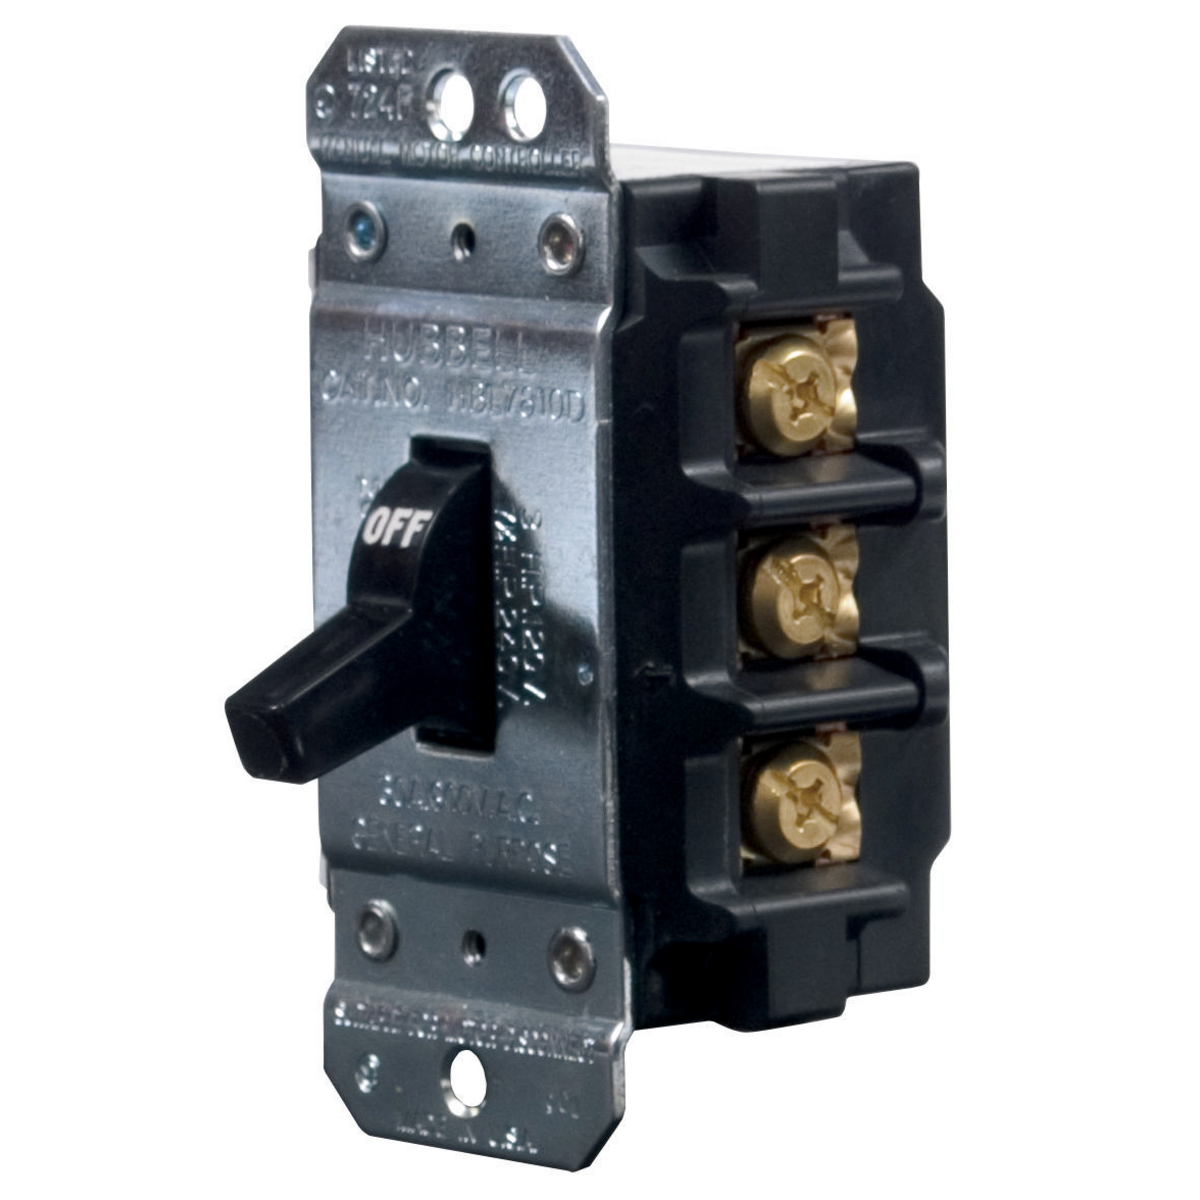 Hbl7810d Brand Wiring Device Kellems Pickup Switch Cross Reference Terminal Diagrams Wbp Prodimage Front 1 Alt